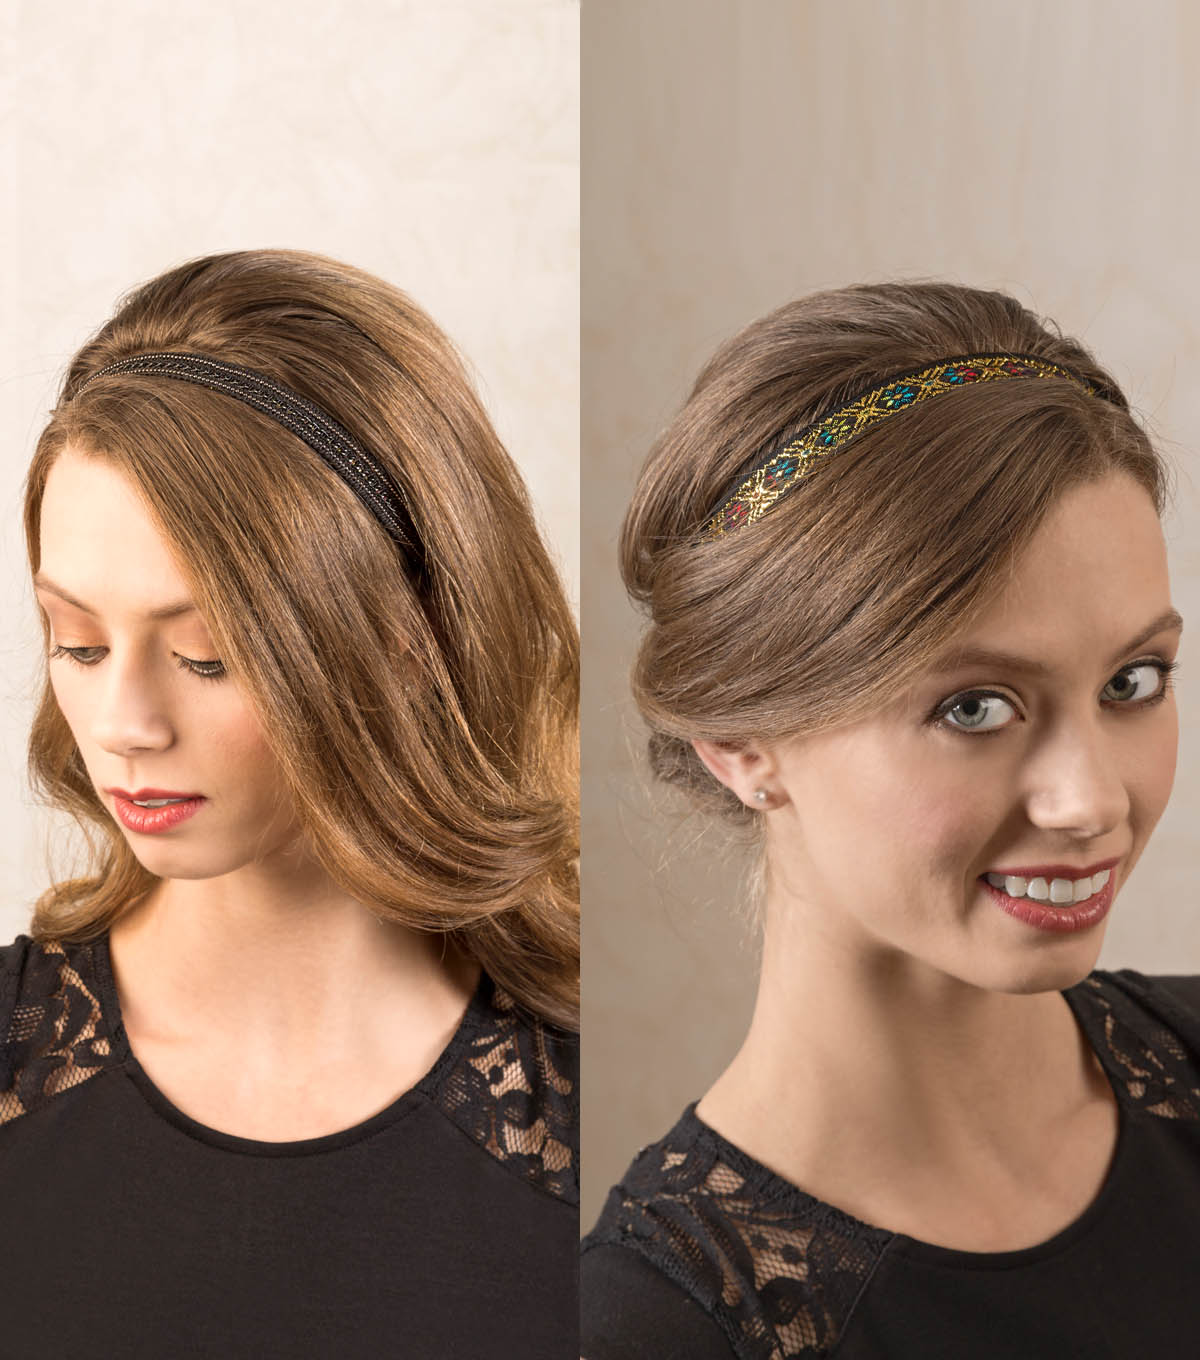 2-Sided Headband